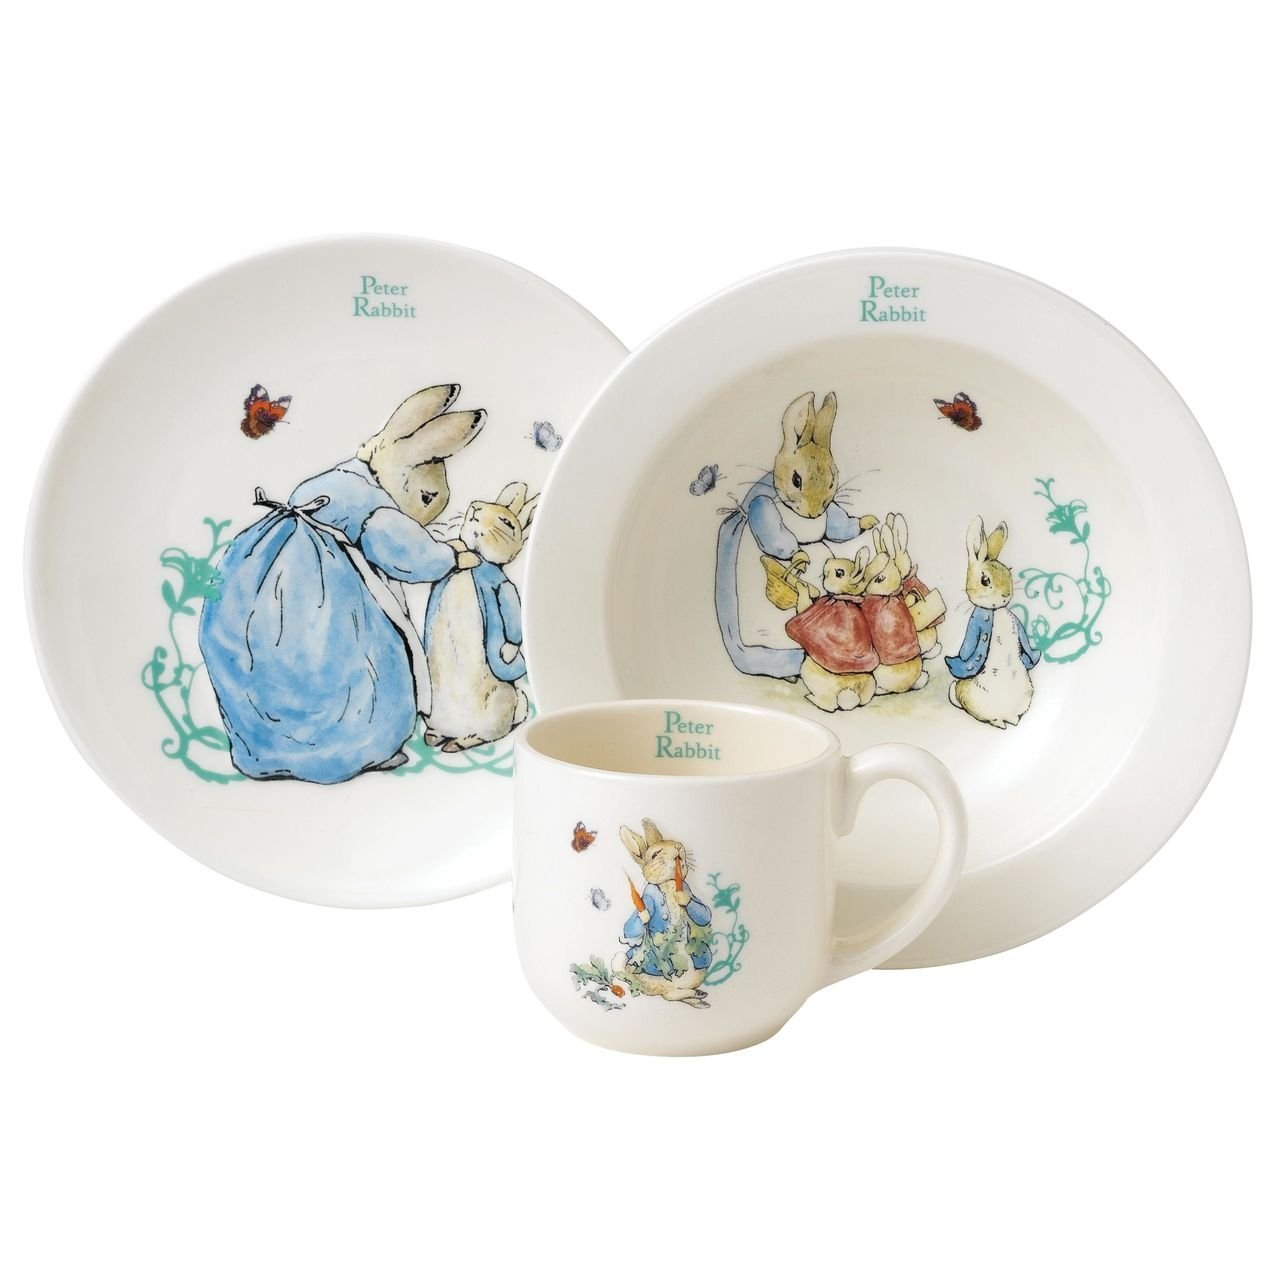 Beatrix Potter Peter Rabbit Nursery Set, 3 Pieces - White Enesco A25864